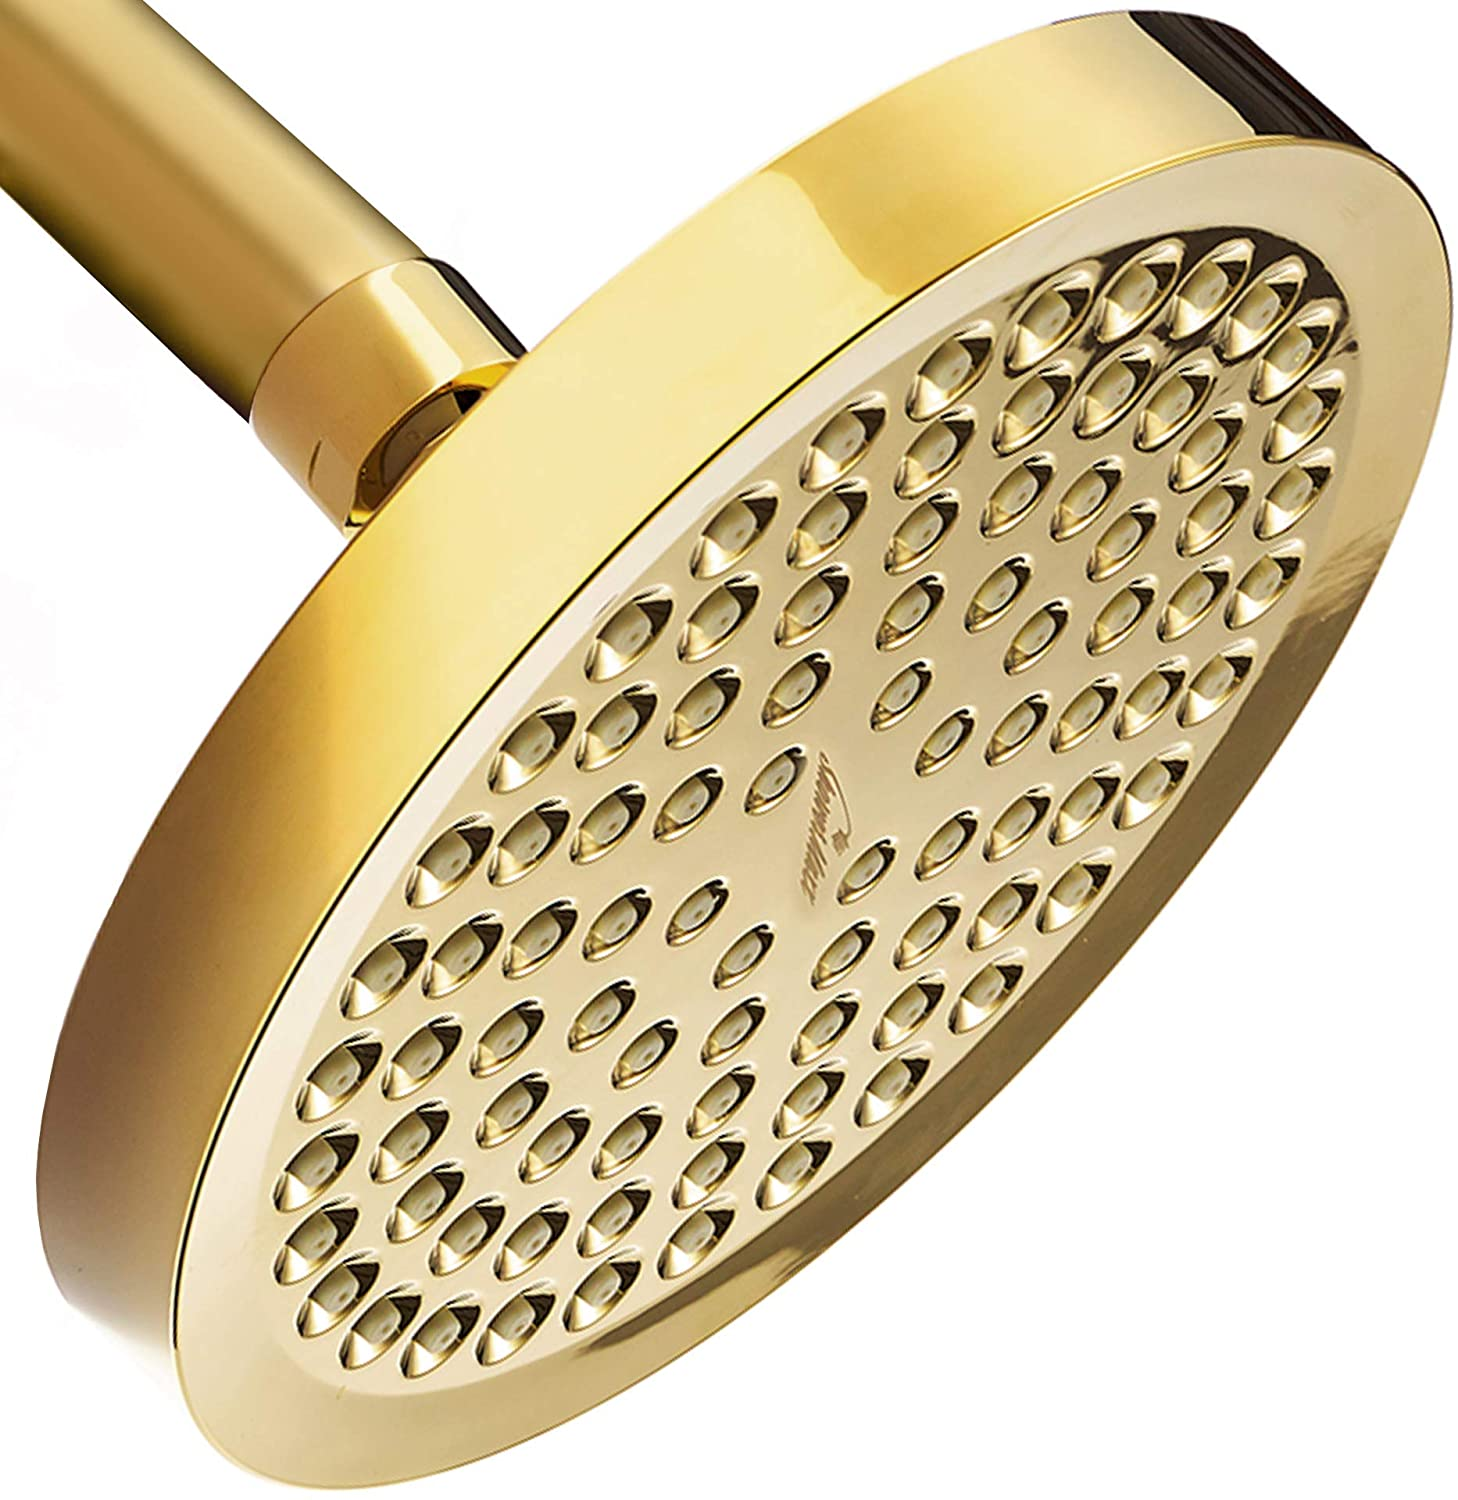 Best Rain Shower Head: Showermaxx Luxury Spa Grade